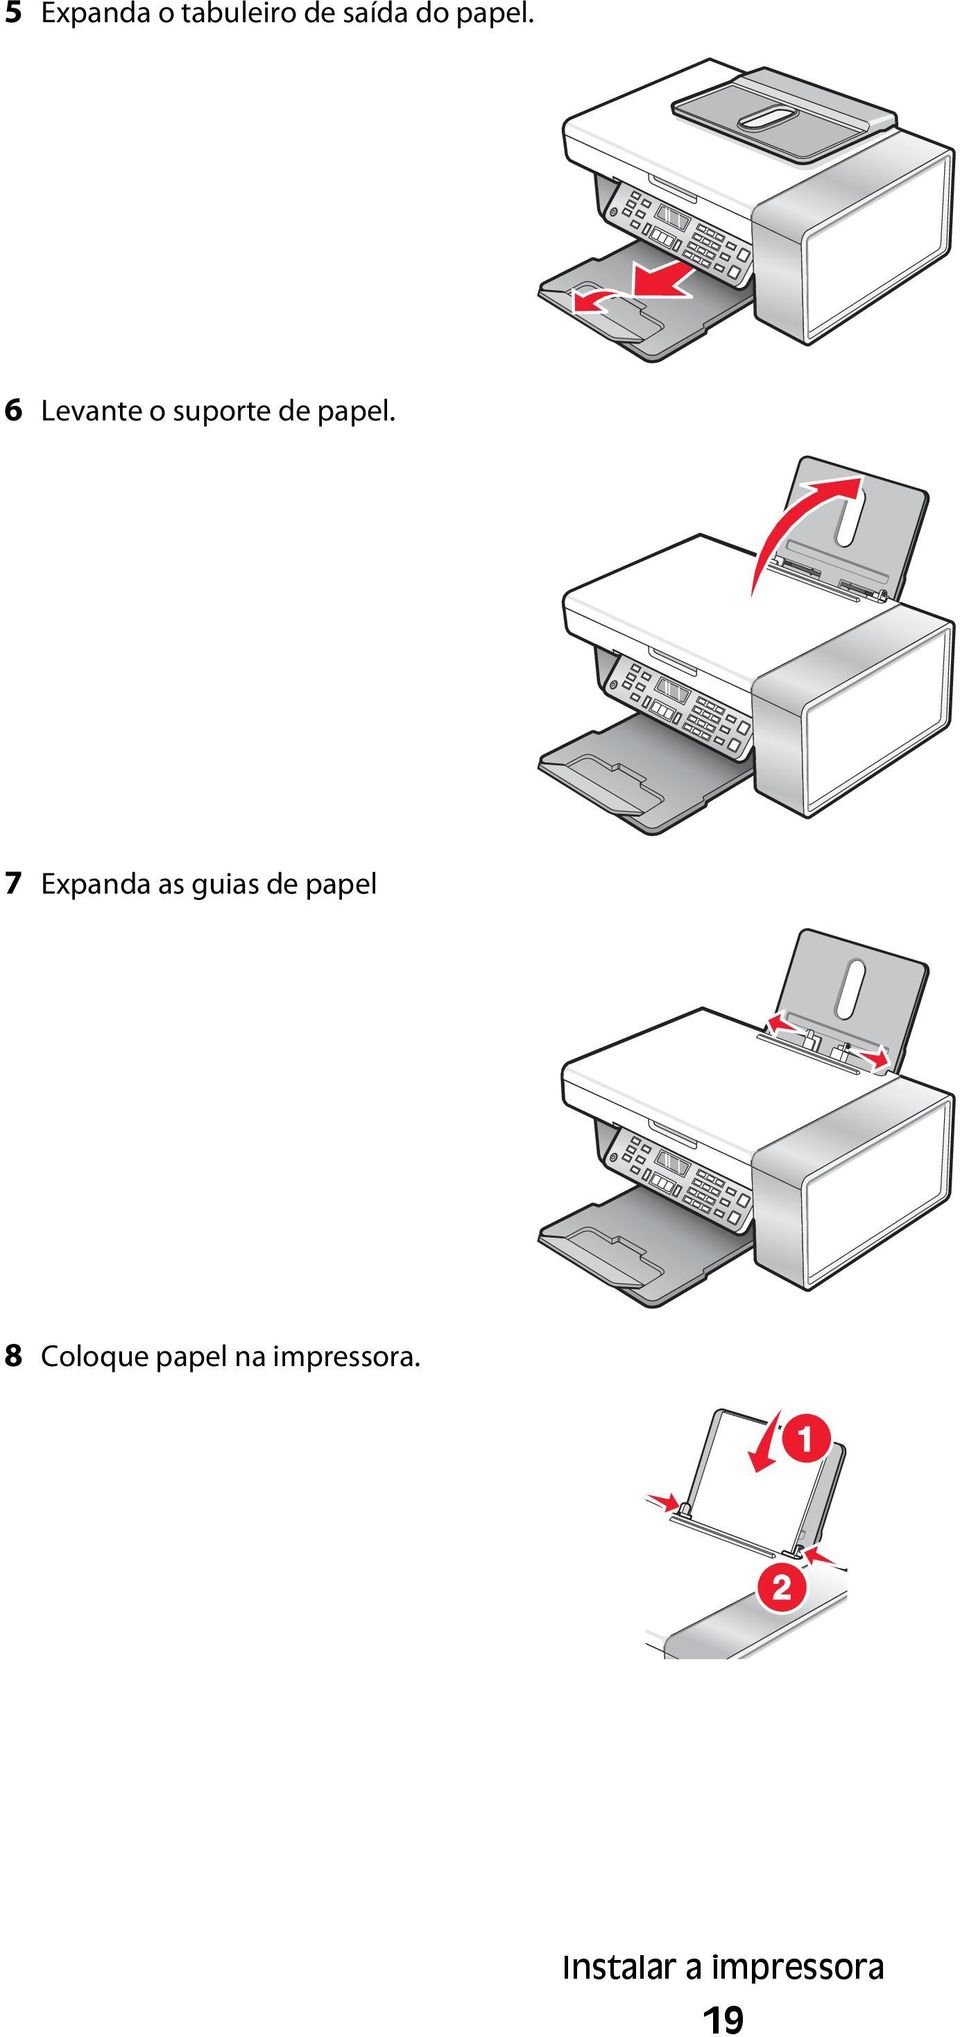 7 Expanda as guias de papel 8 Coloque